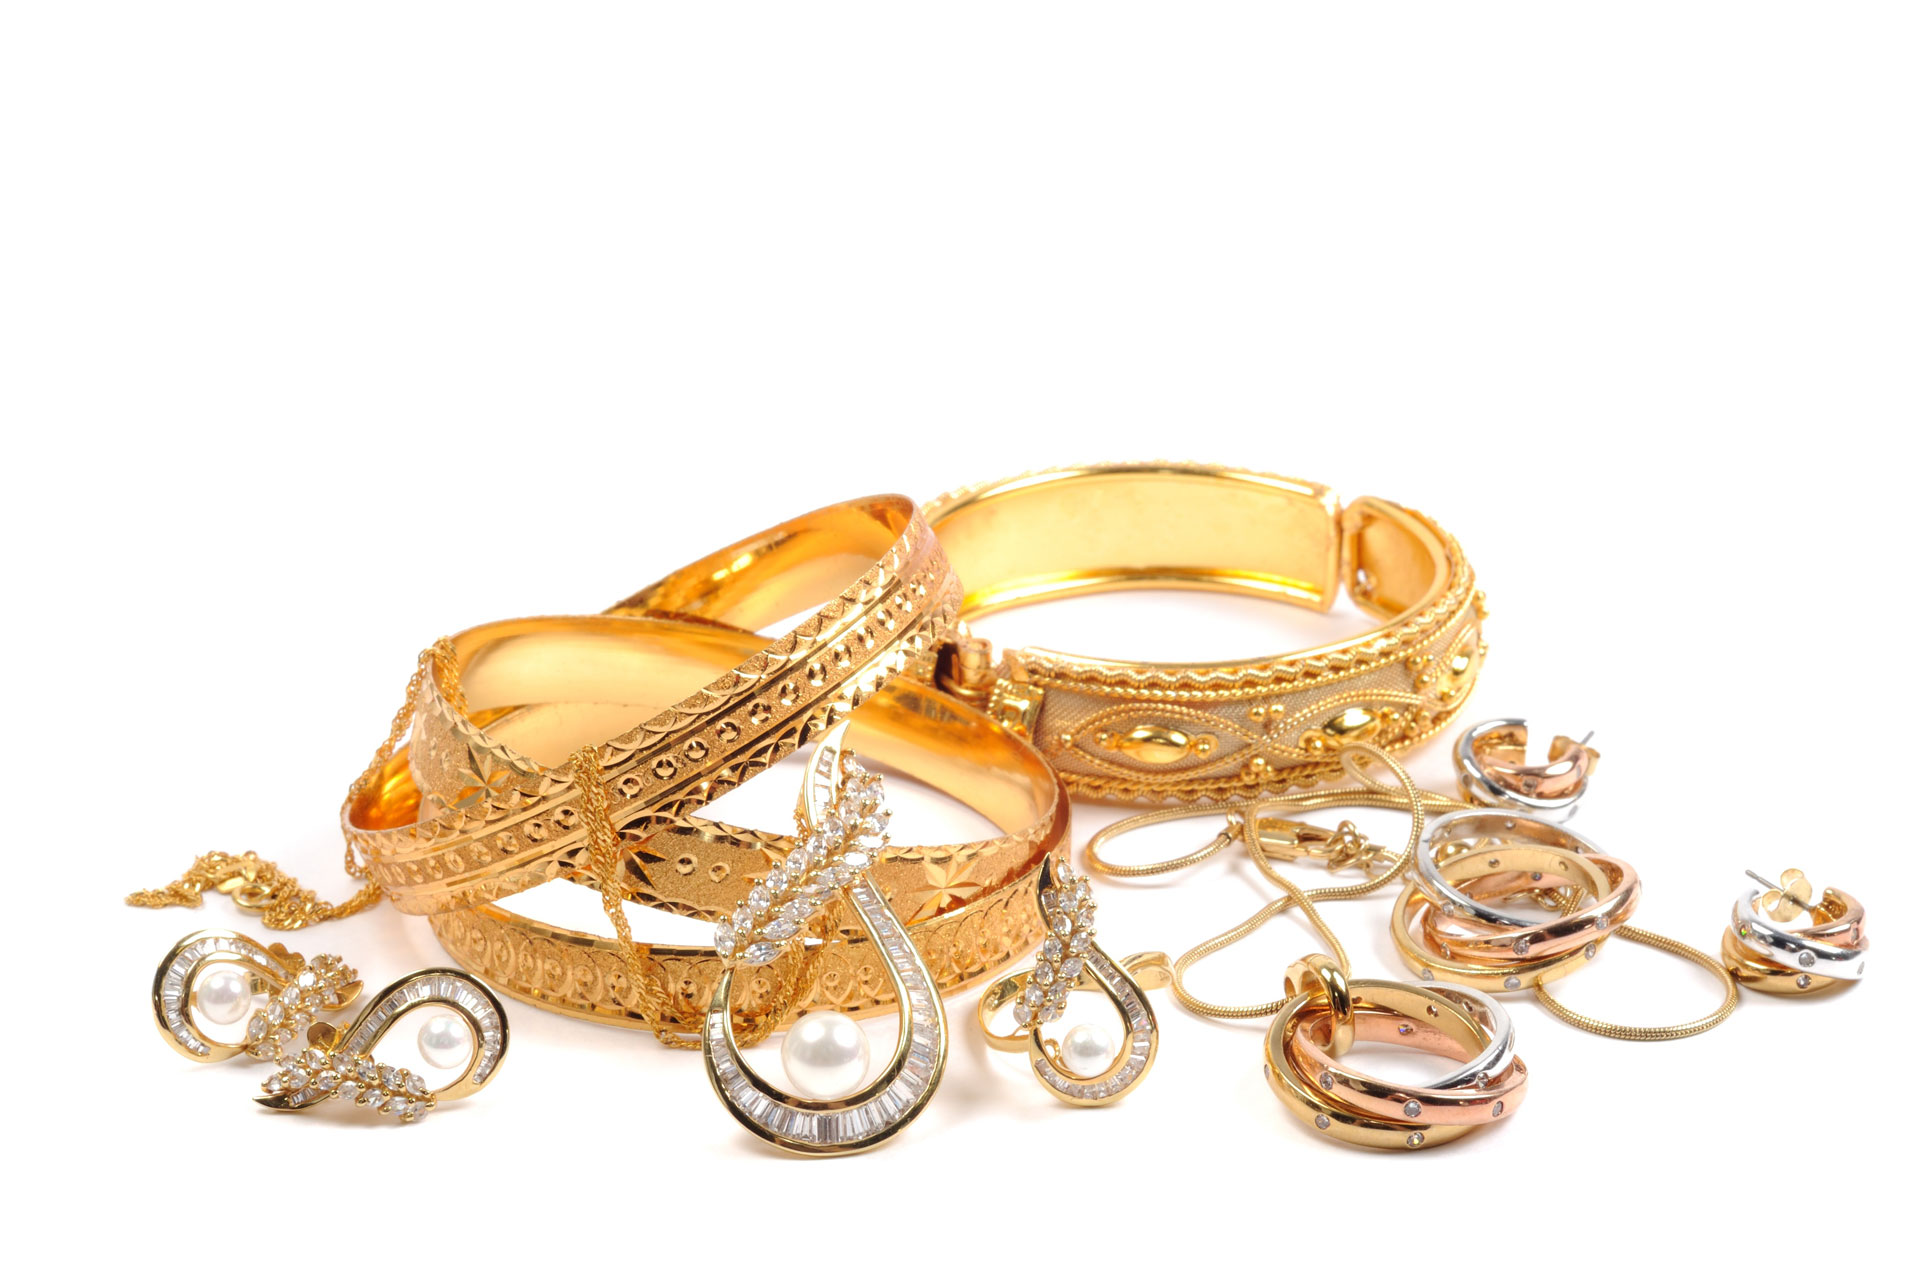 Mixture of gold and diamond jewelry